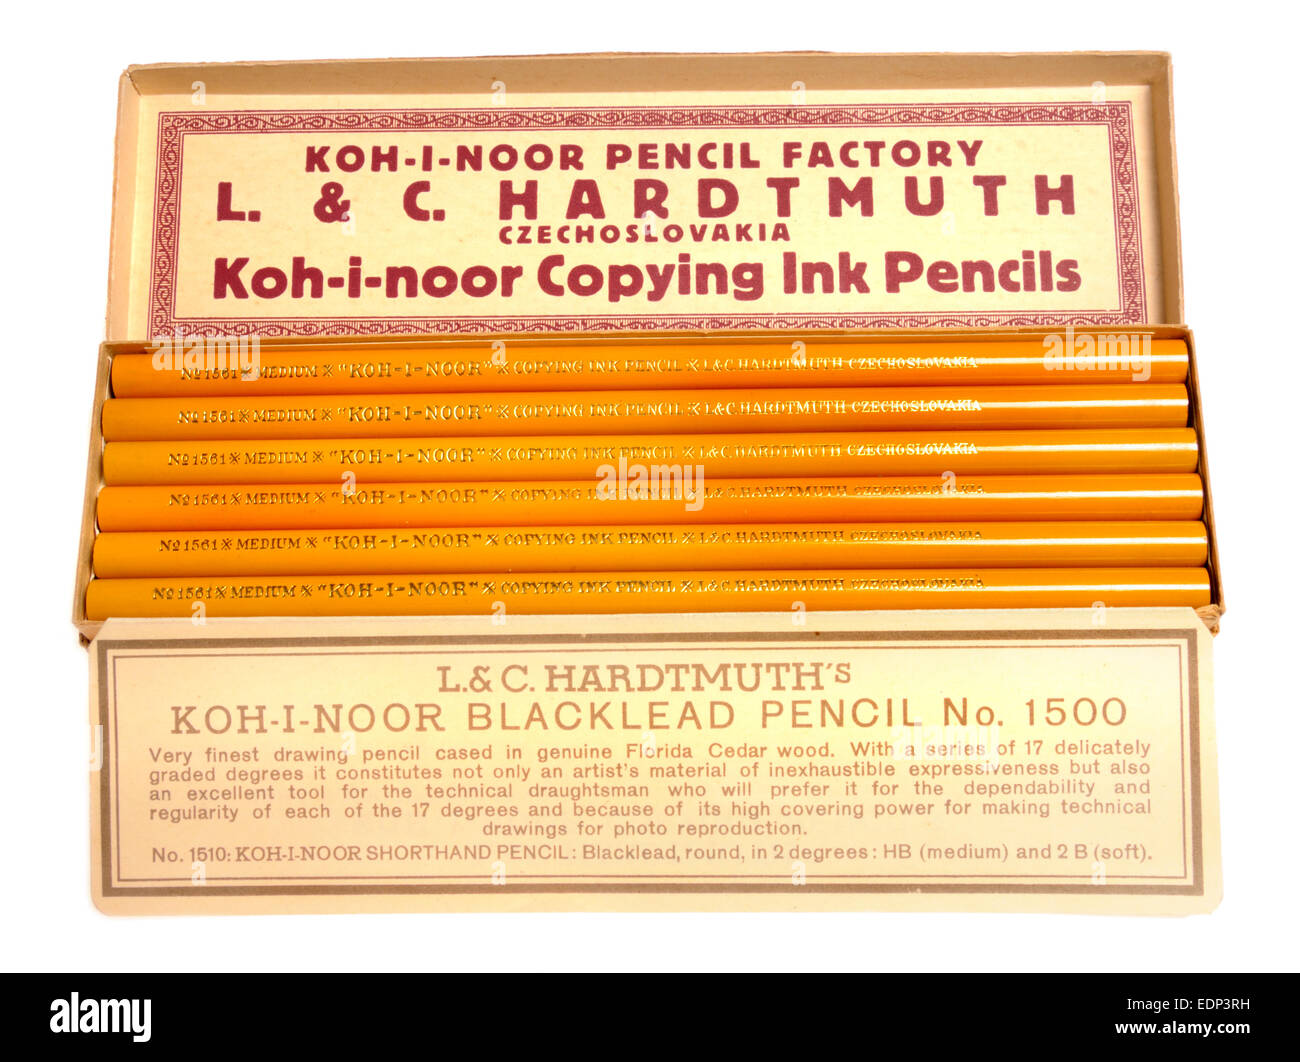 Koh-i-noor Copying Ink Pencils made by L & C Hardtmuth, Czechoslovakia, 1970s - Stock Image